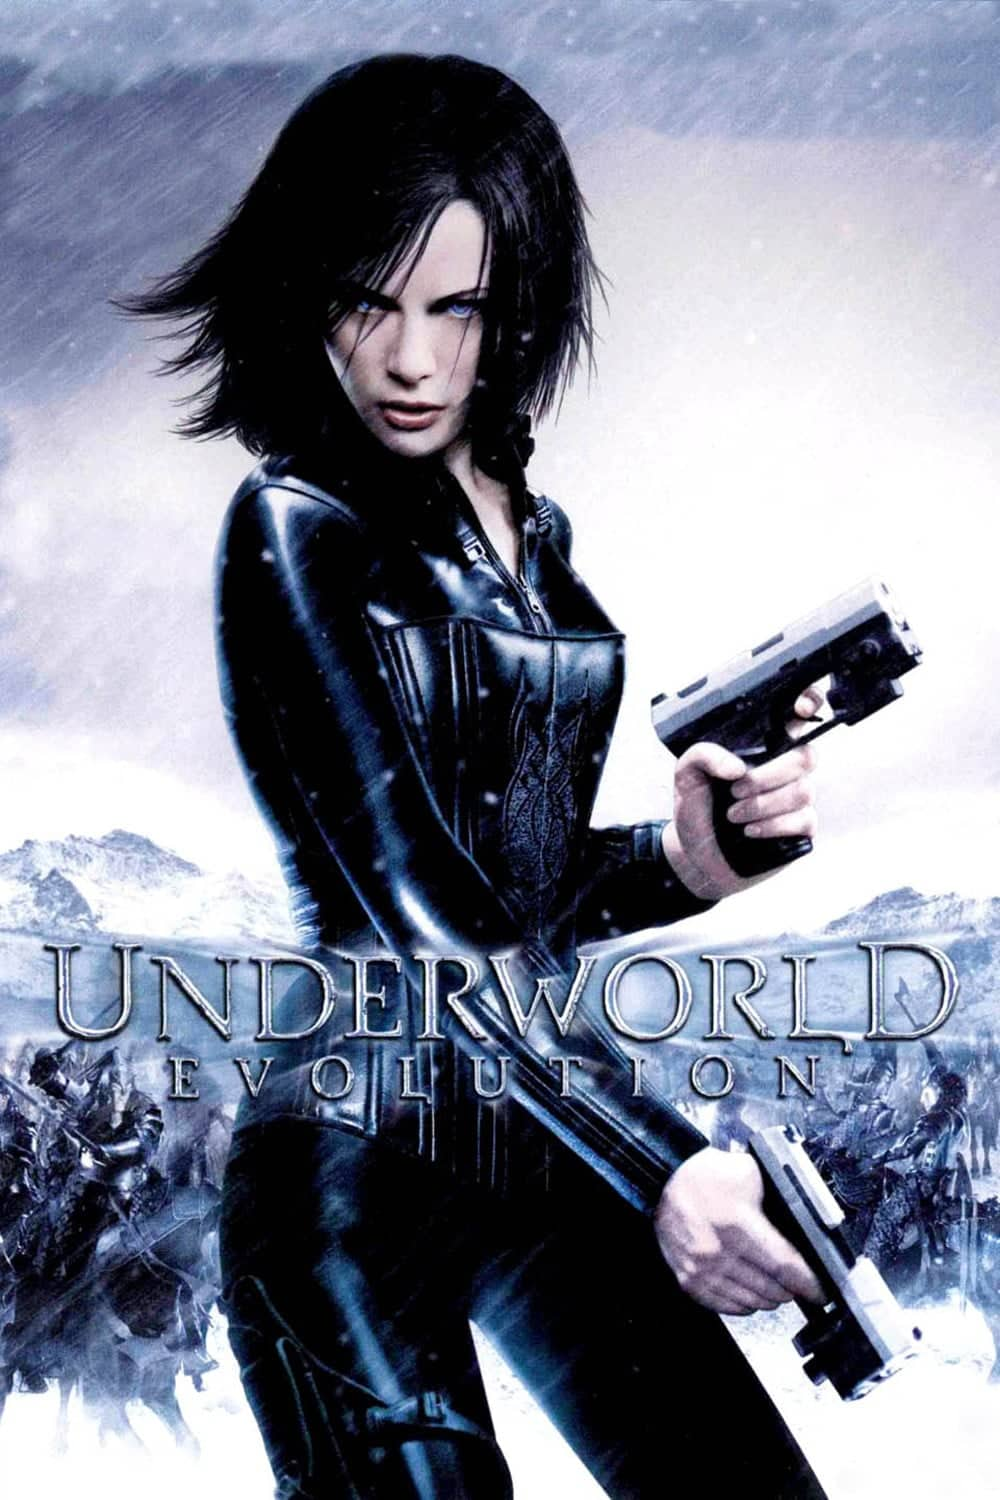 Underworld: Evolution, 2006